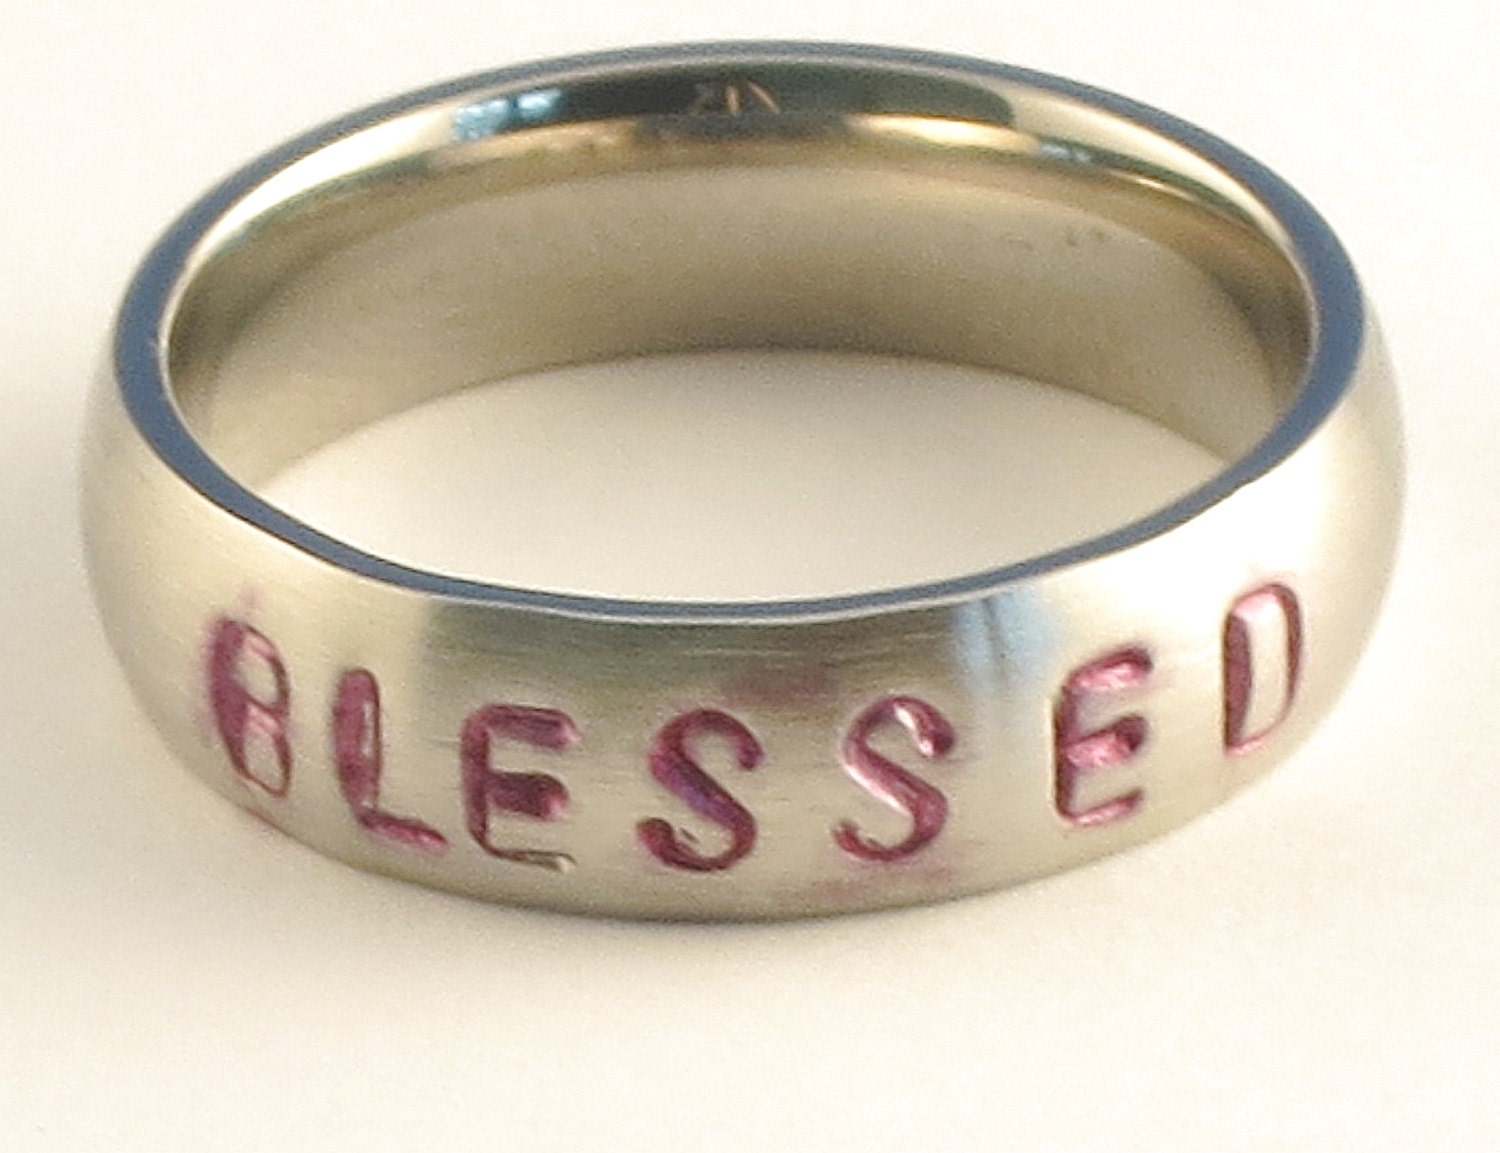 BLESSED - Personalized Hand Stamped Customized Stainless Steel Low Dome Name Ring 5mm Ring Sizes 3-14